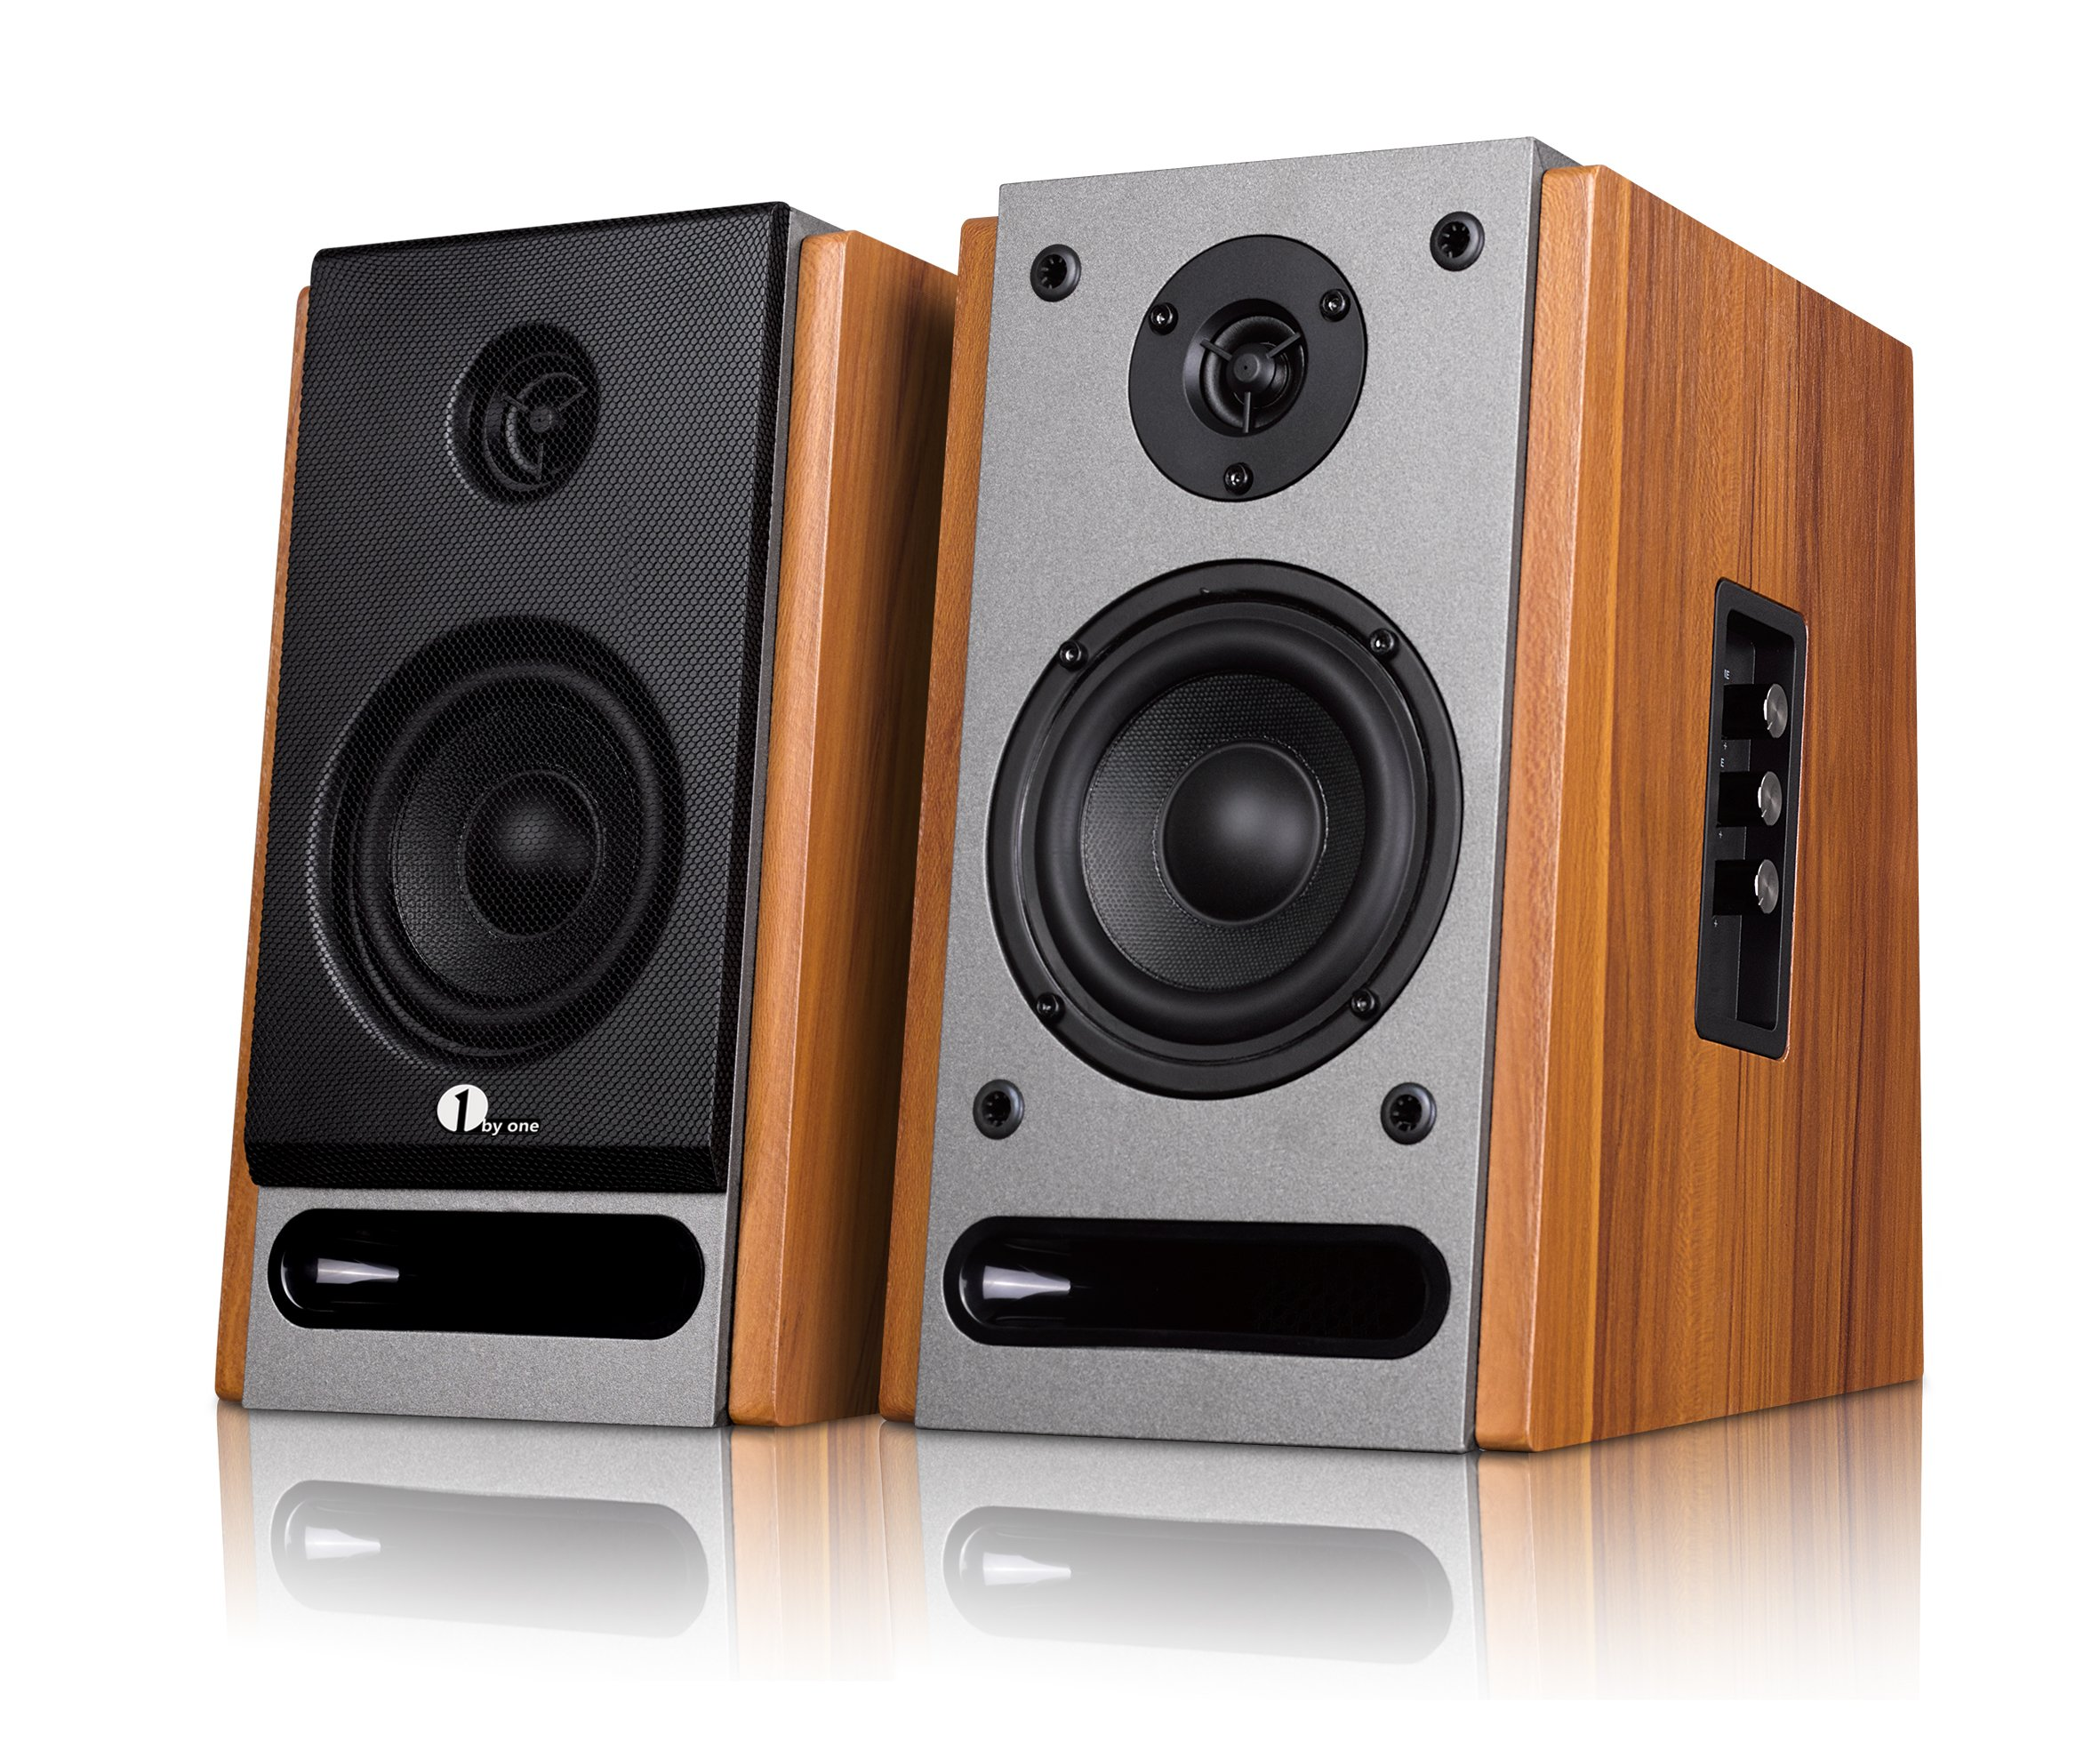 1byone Powered Bluetooth Classic Bookshelf Speaker with 4'' Woofer and 1'' Tweeter, 2X21W RMS